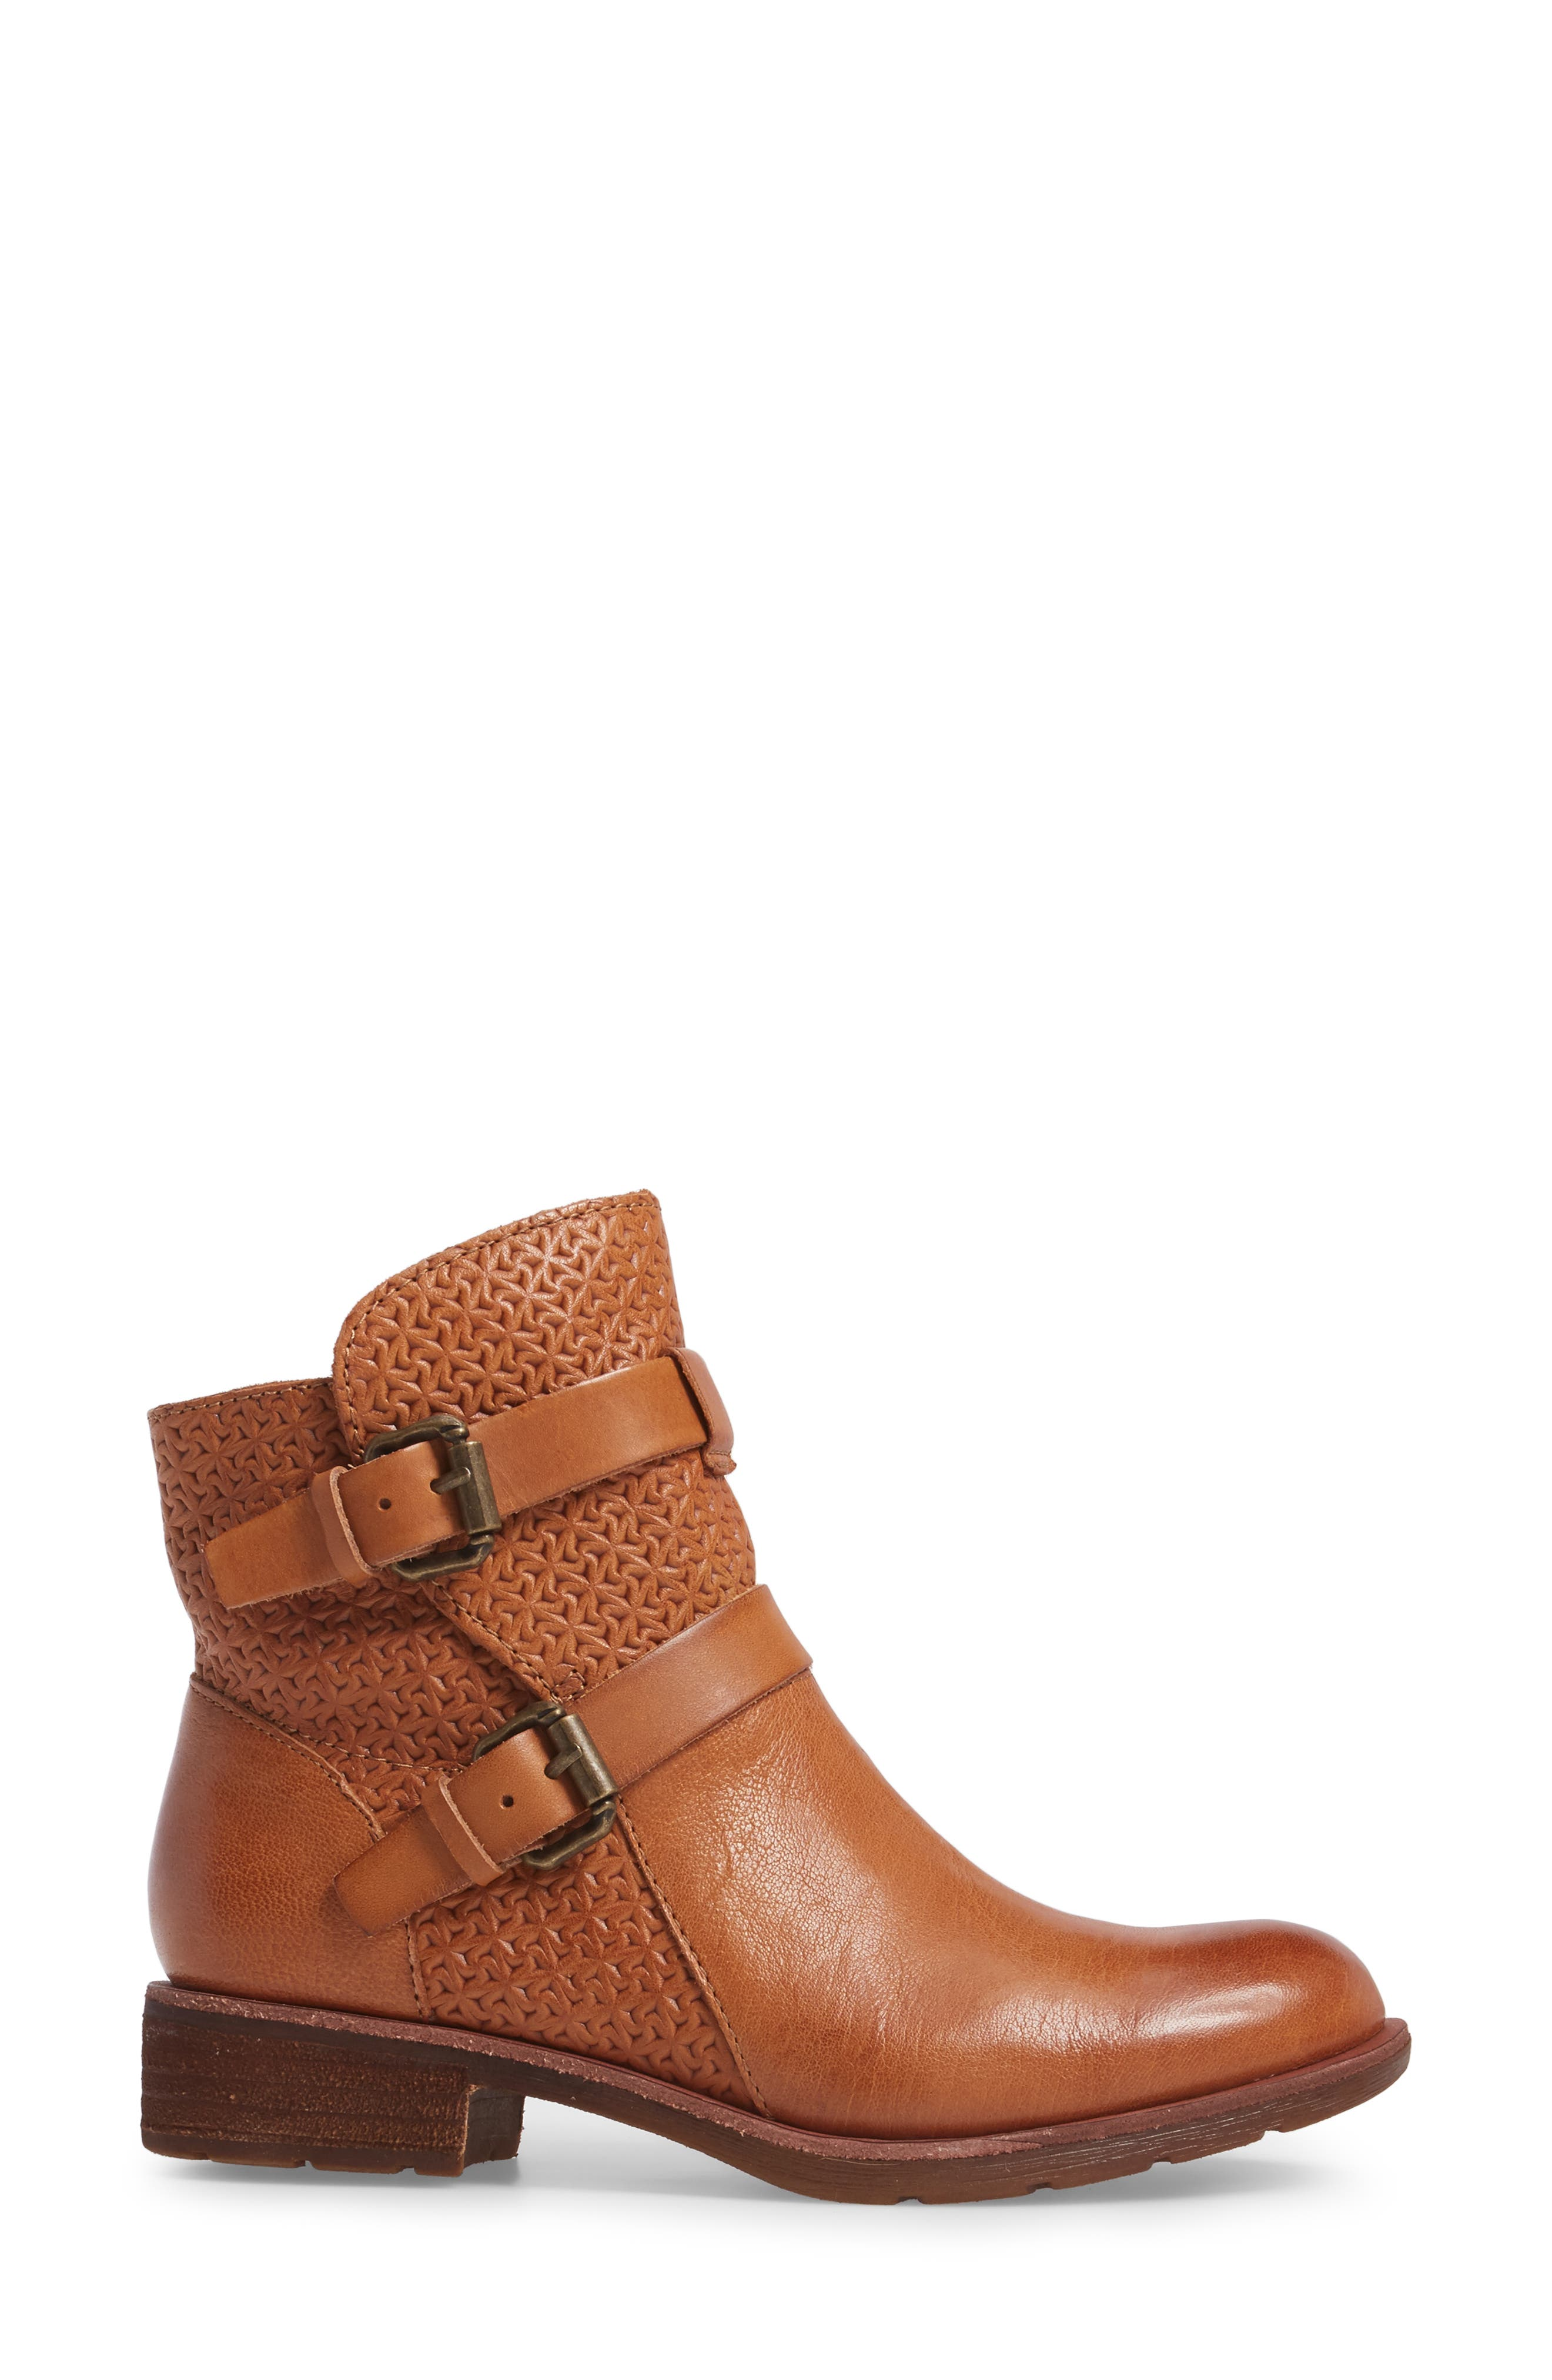 Baywood Buckle Boot,                             Alternate thumbnail 3, color,                             LUGGAGE LEATHER